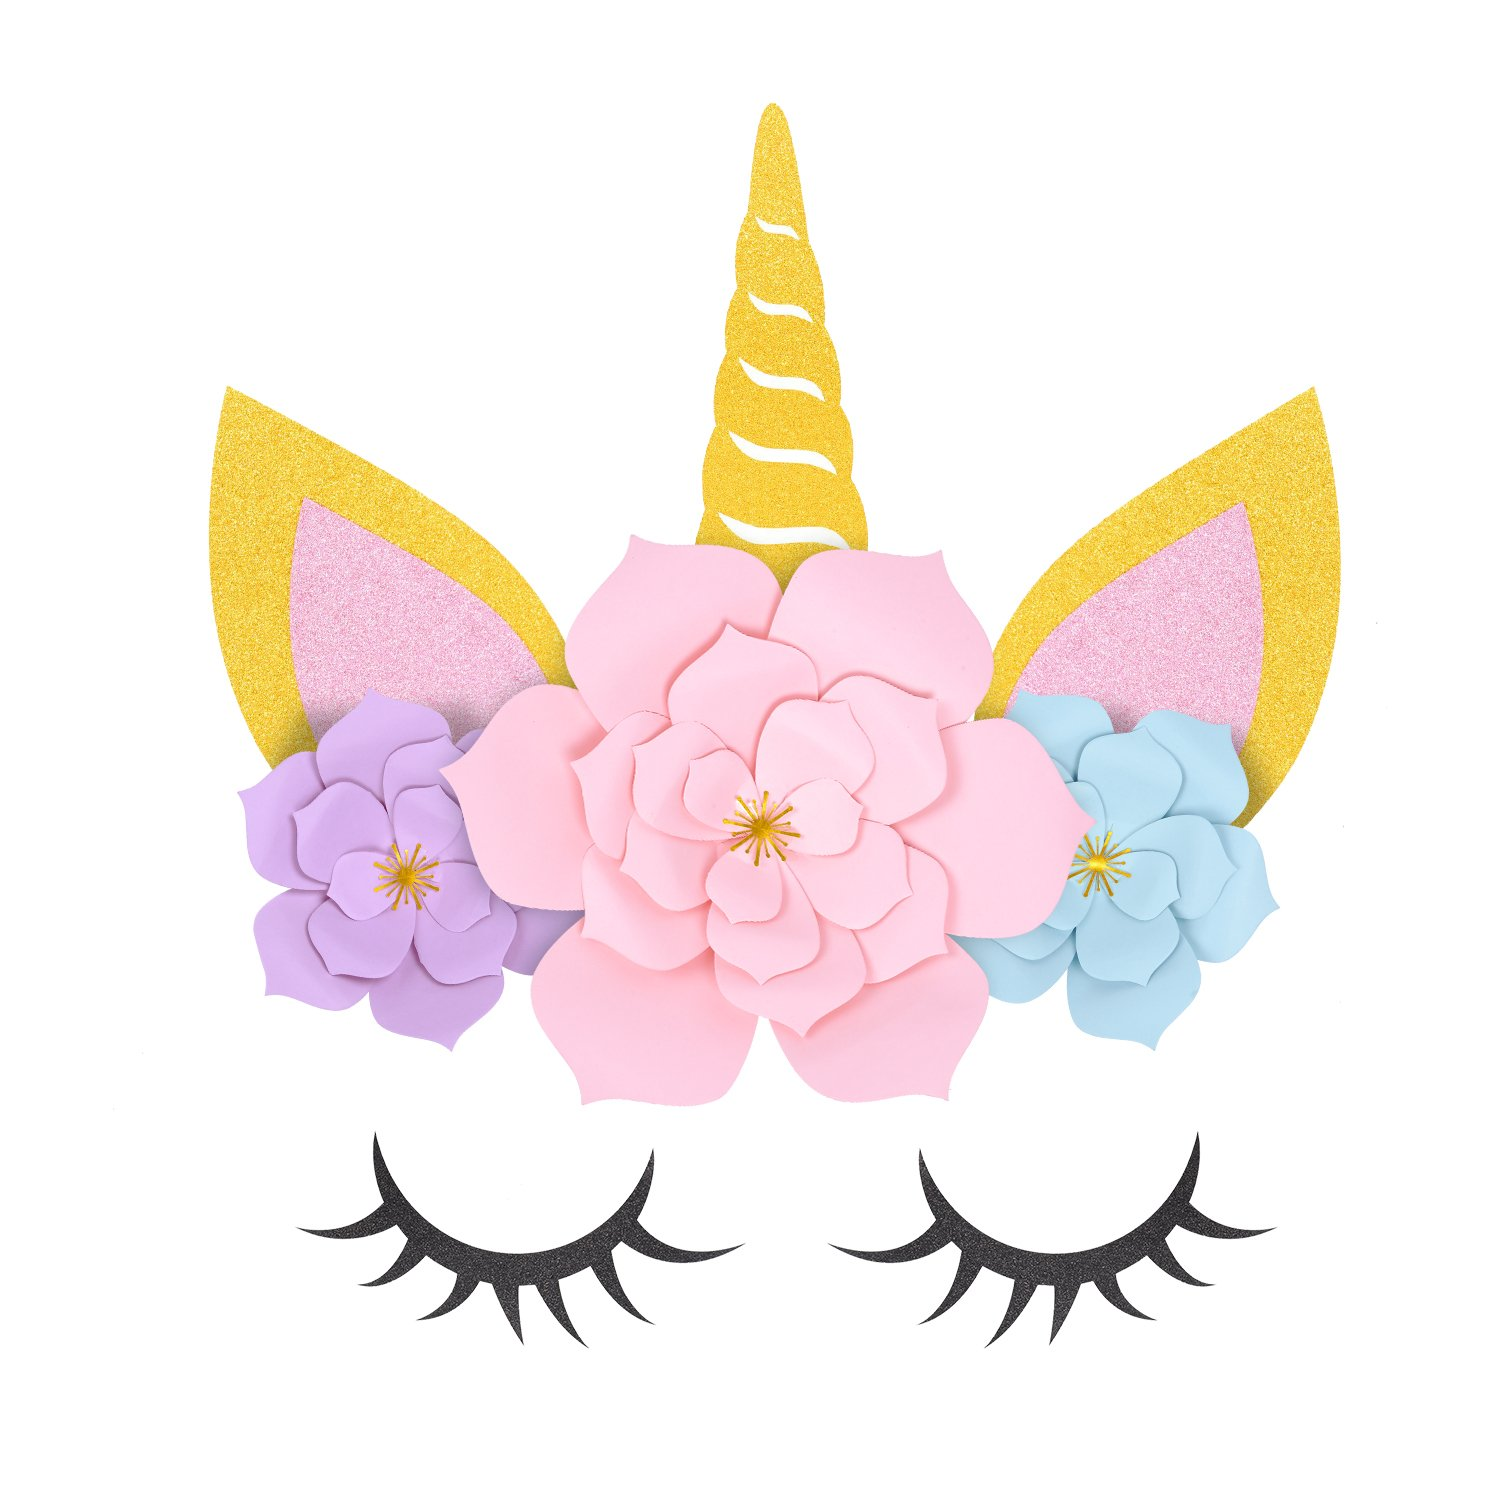 ORIENTAL CHERRY Unicorn Party Supplies & Decorations Backdrop For Girls  Birthday Party Baby Shower.